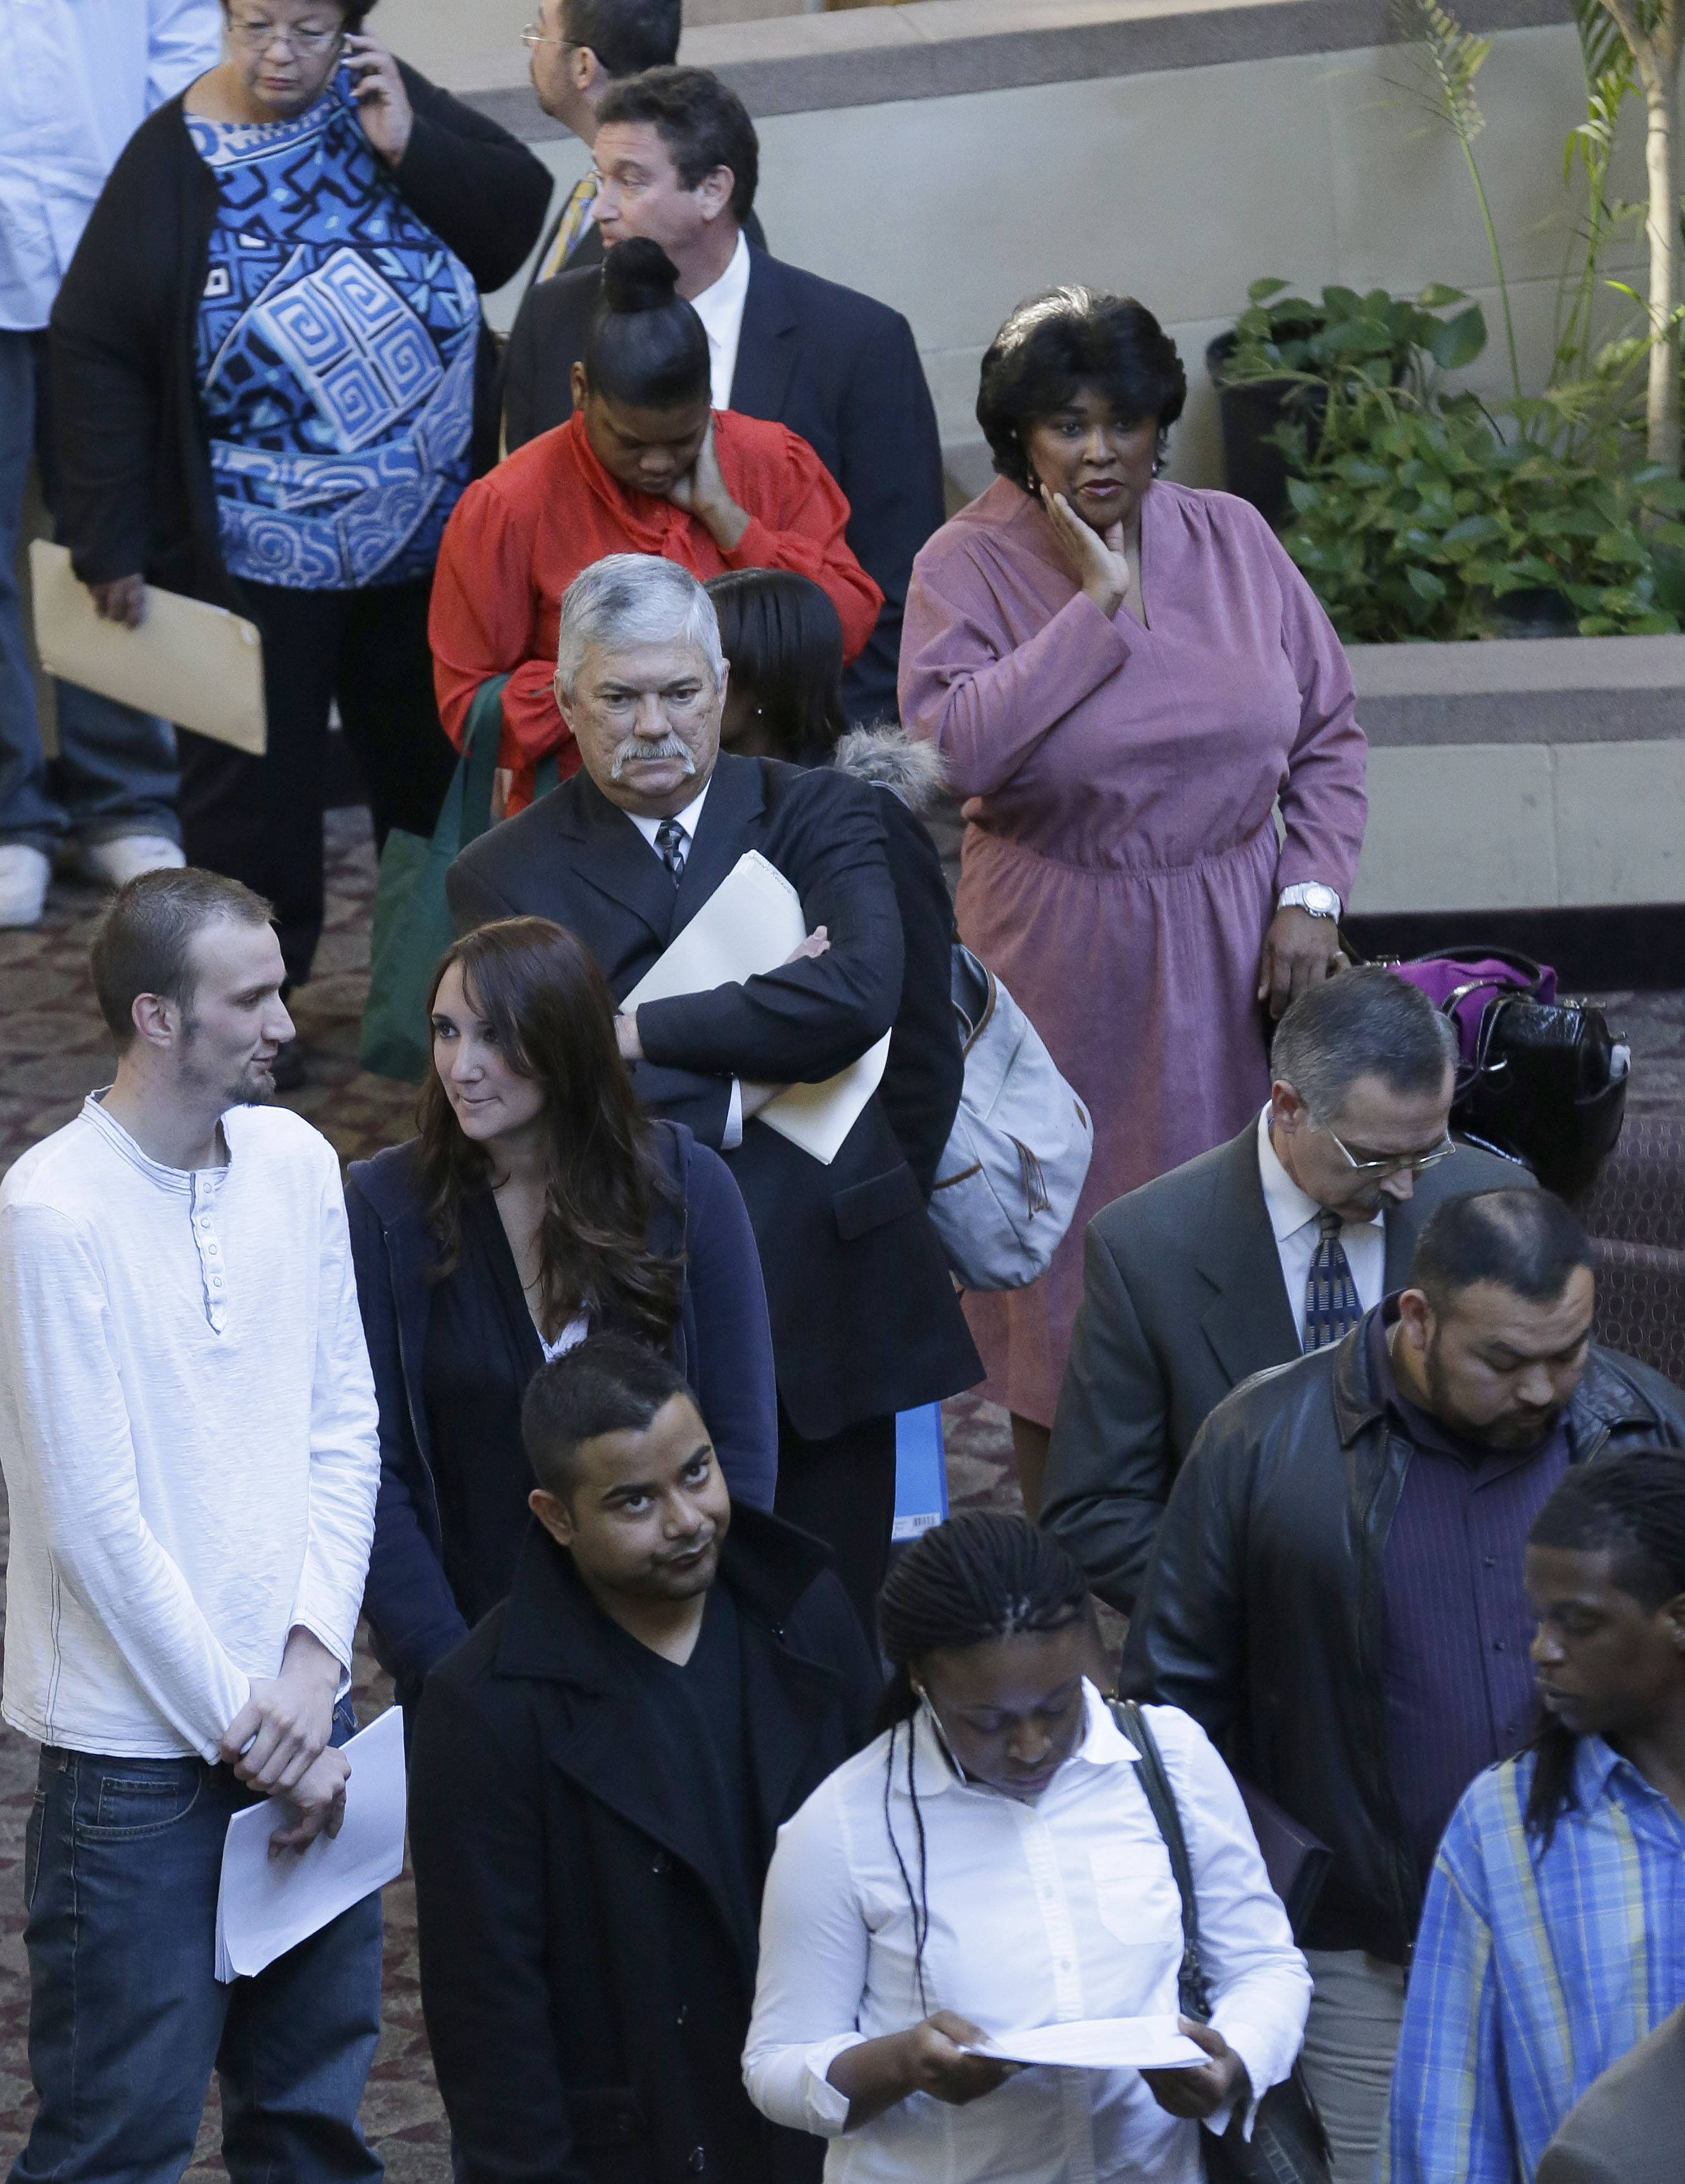 Job seekers line up to meet prospective employers at a career fair at a hotel in Dallas.